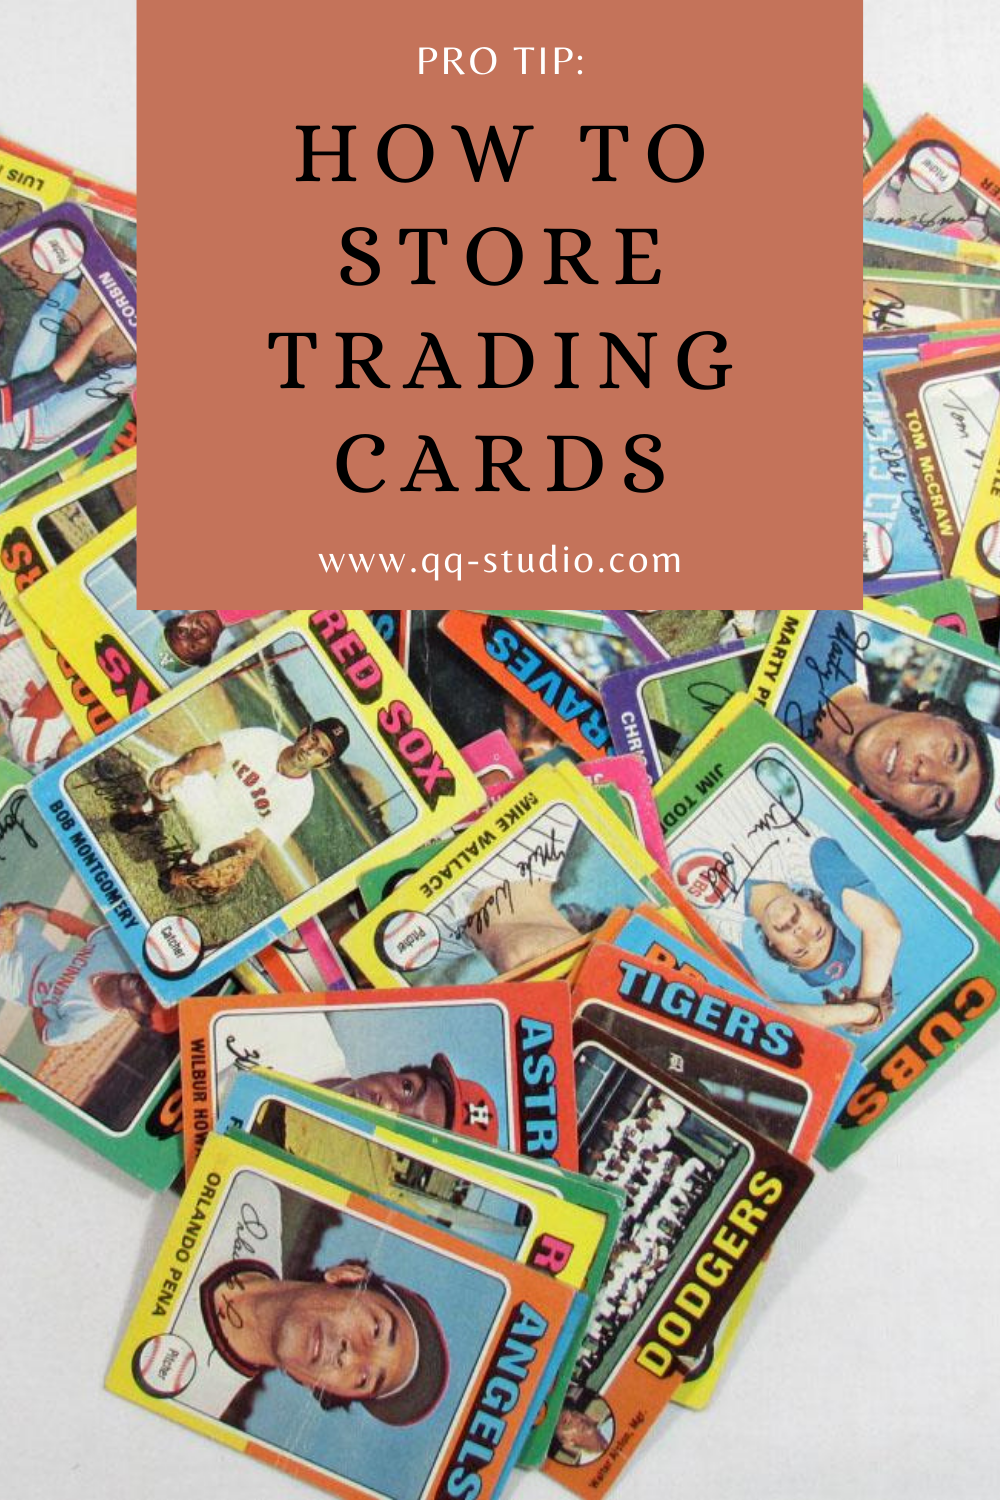 How to Store Trading Cards